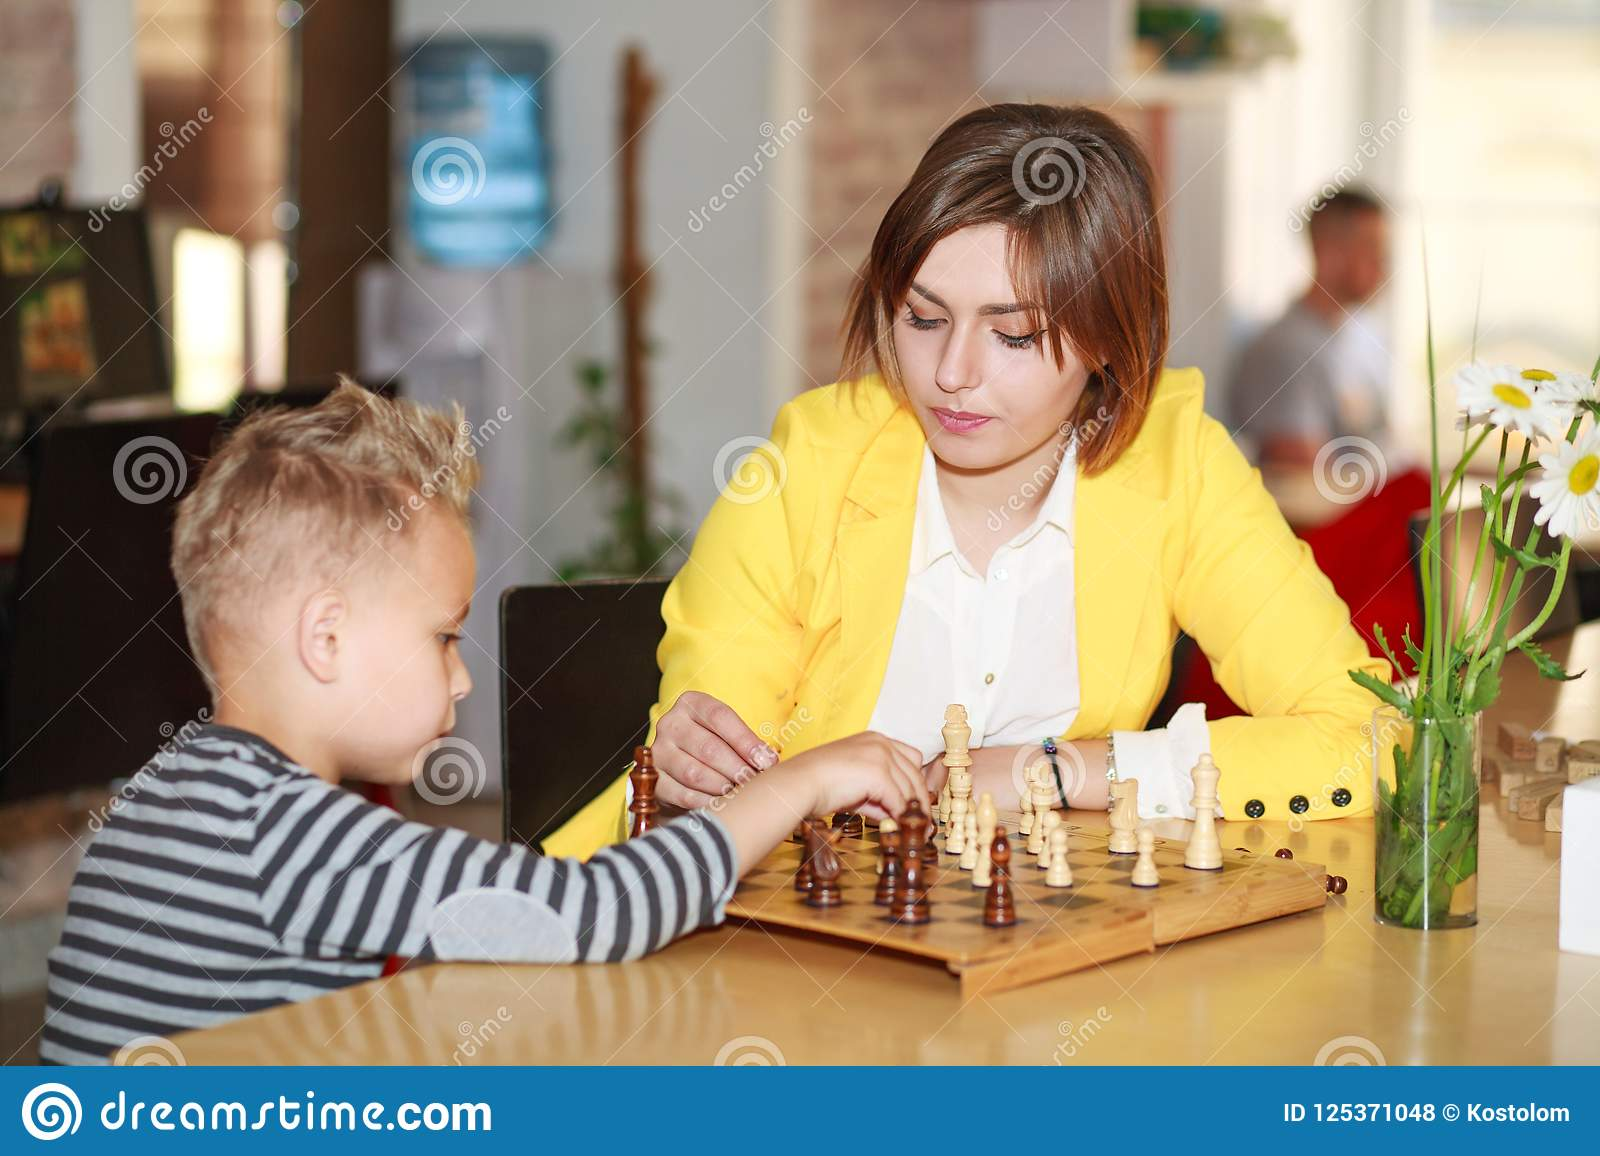 Mother teaches son play chess at home, parenting education